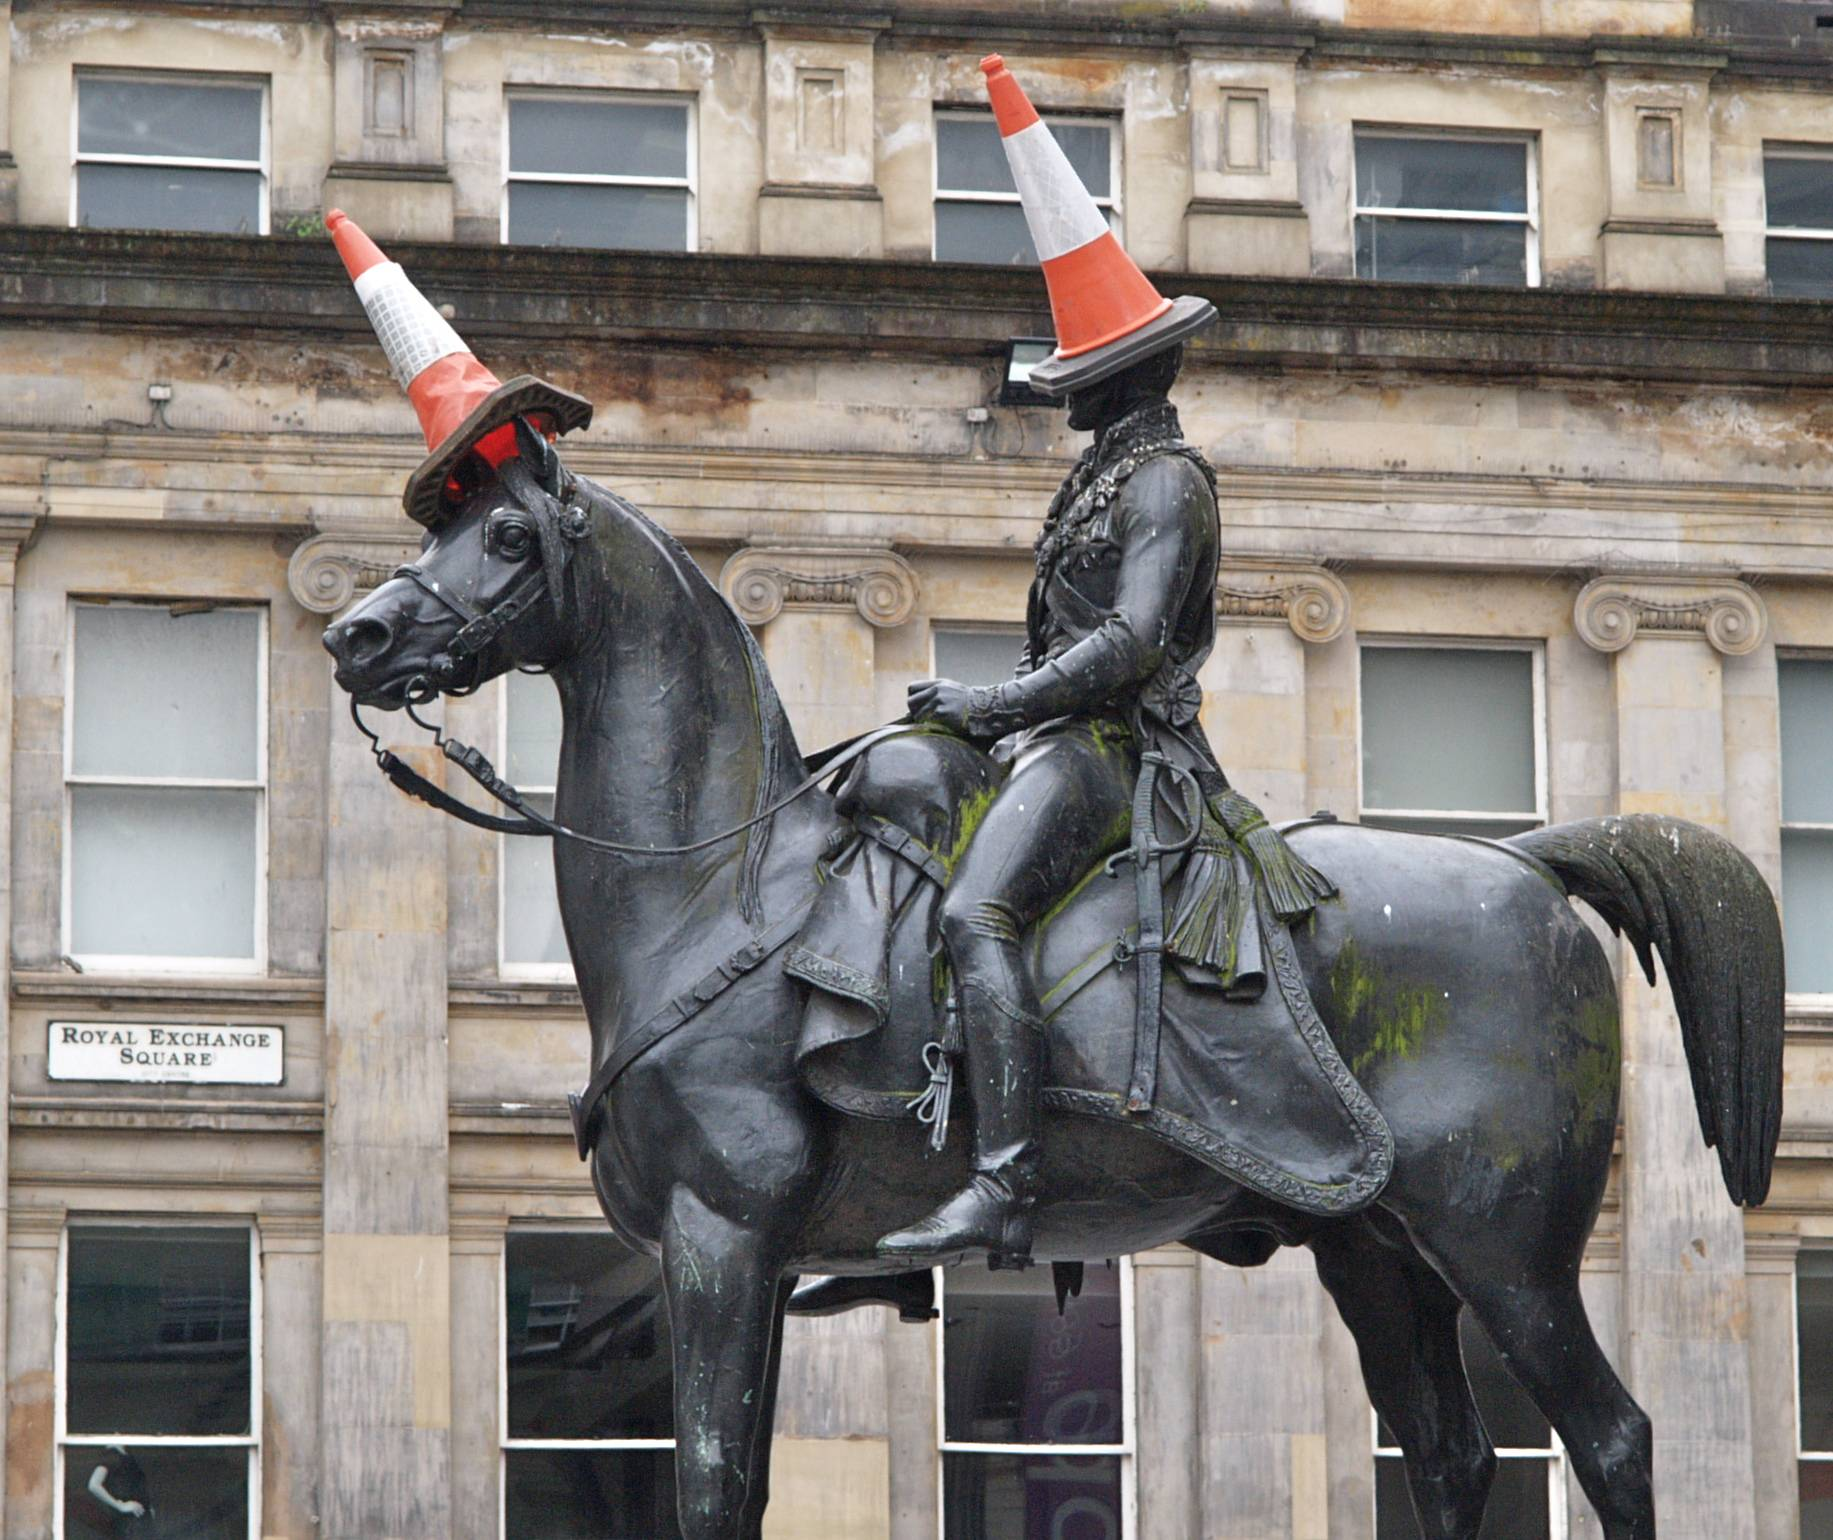 A statue of the Duke of Wellington is rarely seen without a traffic cone on its head. It started as a joke by students decades ago but is now an almost permanent symbol of local humor. Visiting the famous monument with its cones is one of a number of free things to see and do in Glasgow.